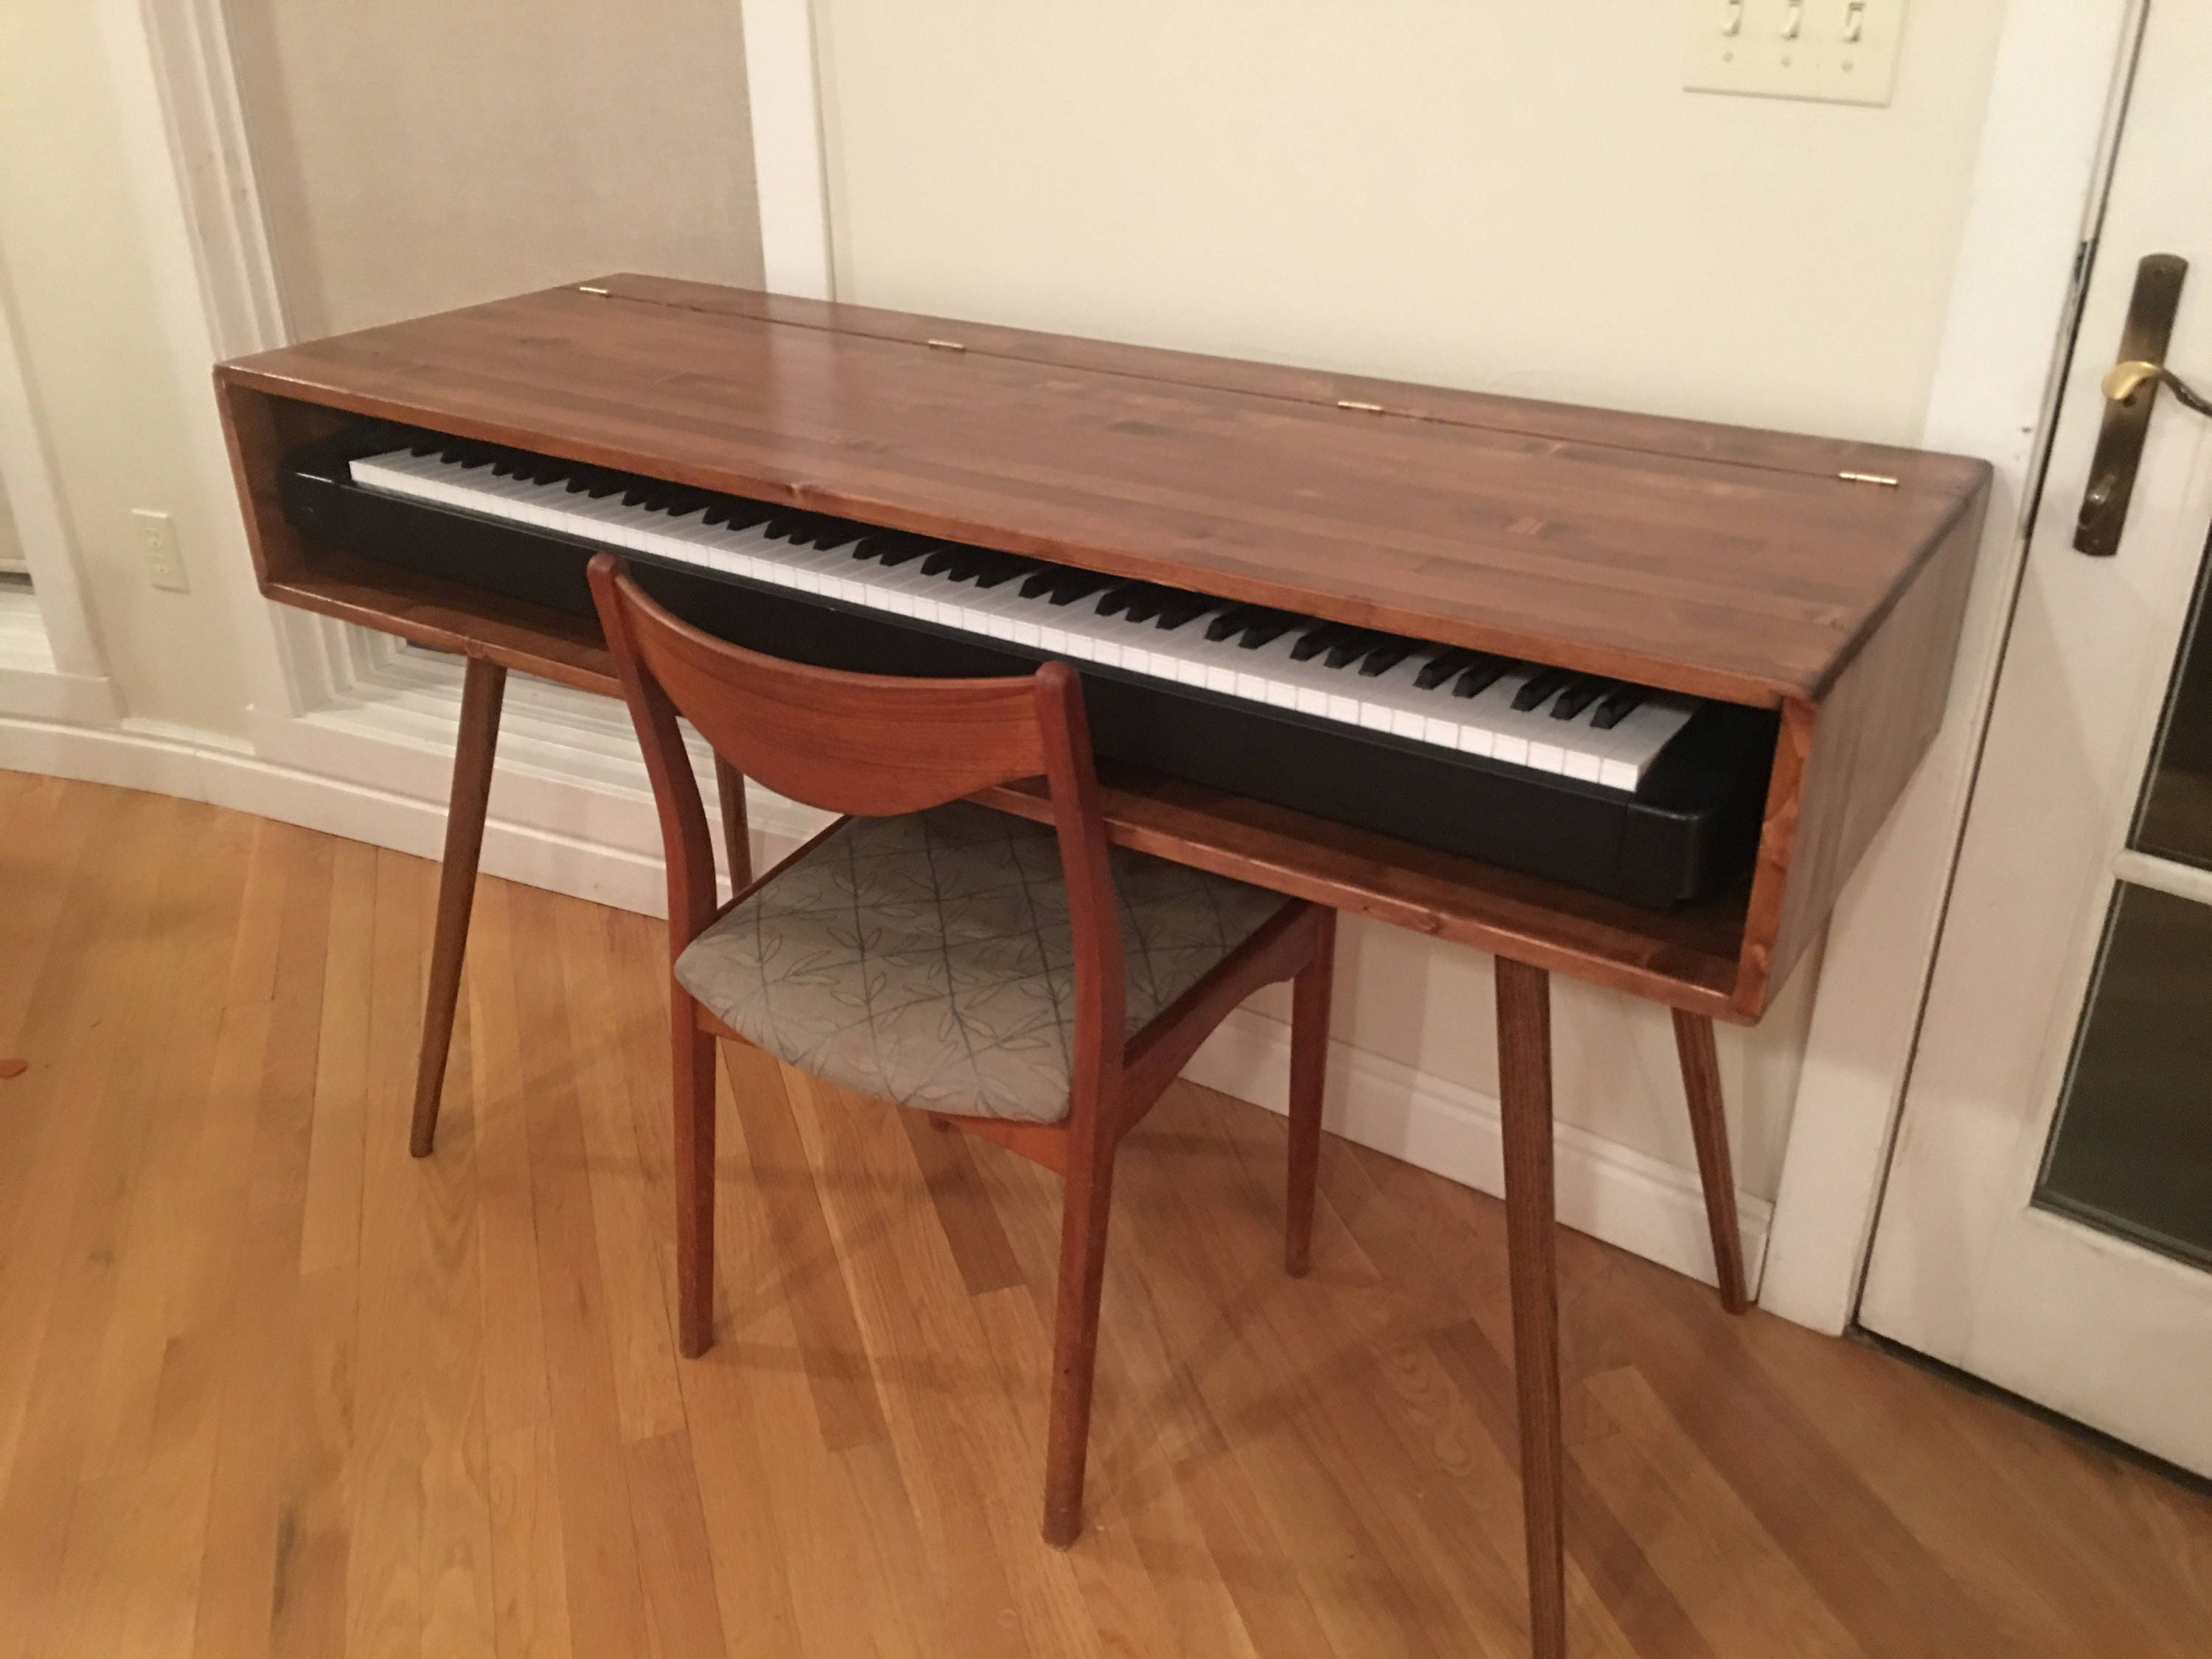 mid century style keyboard stand desk made to order 90 days. Black Bedroom Furniture Sets. Home Design Ideas